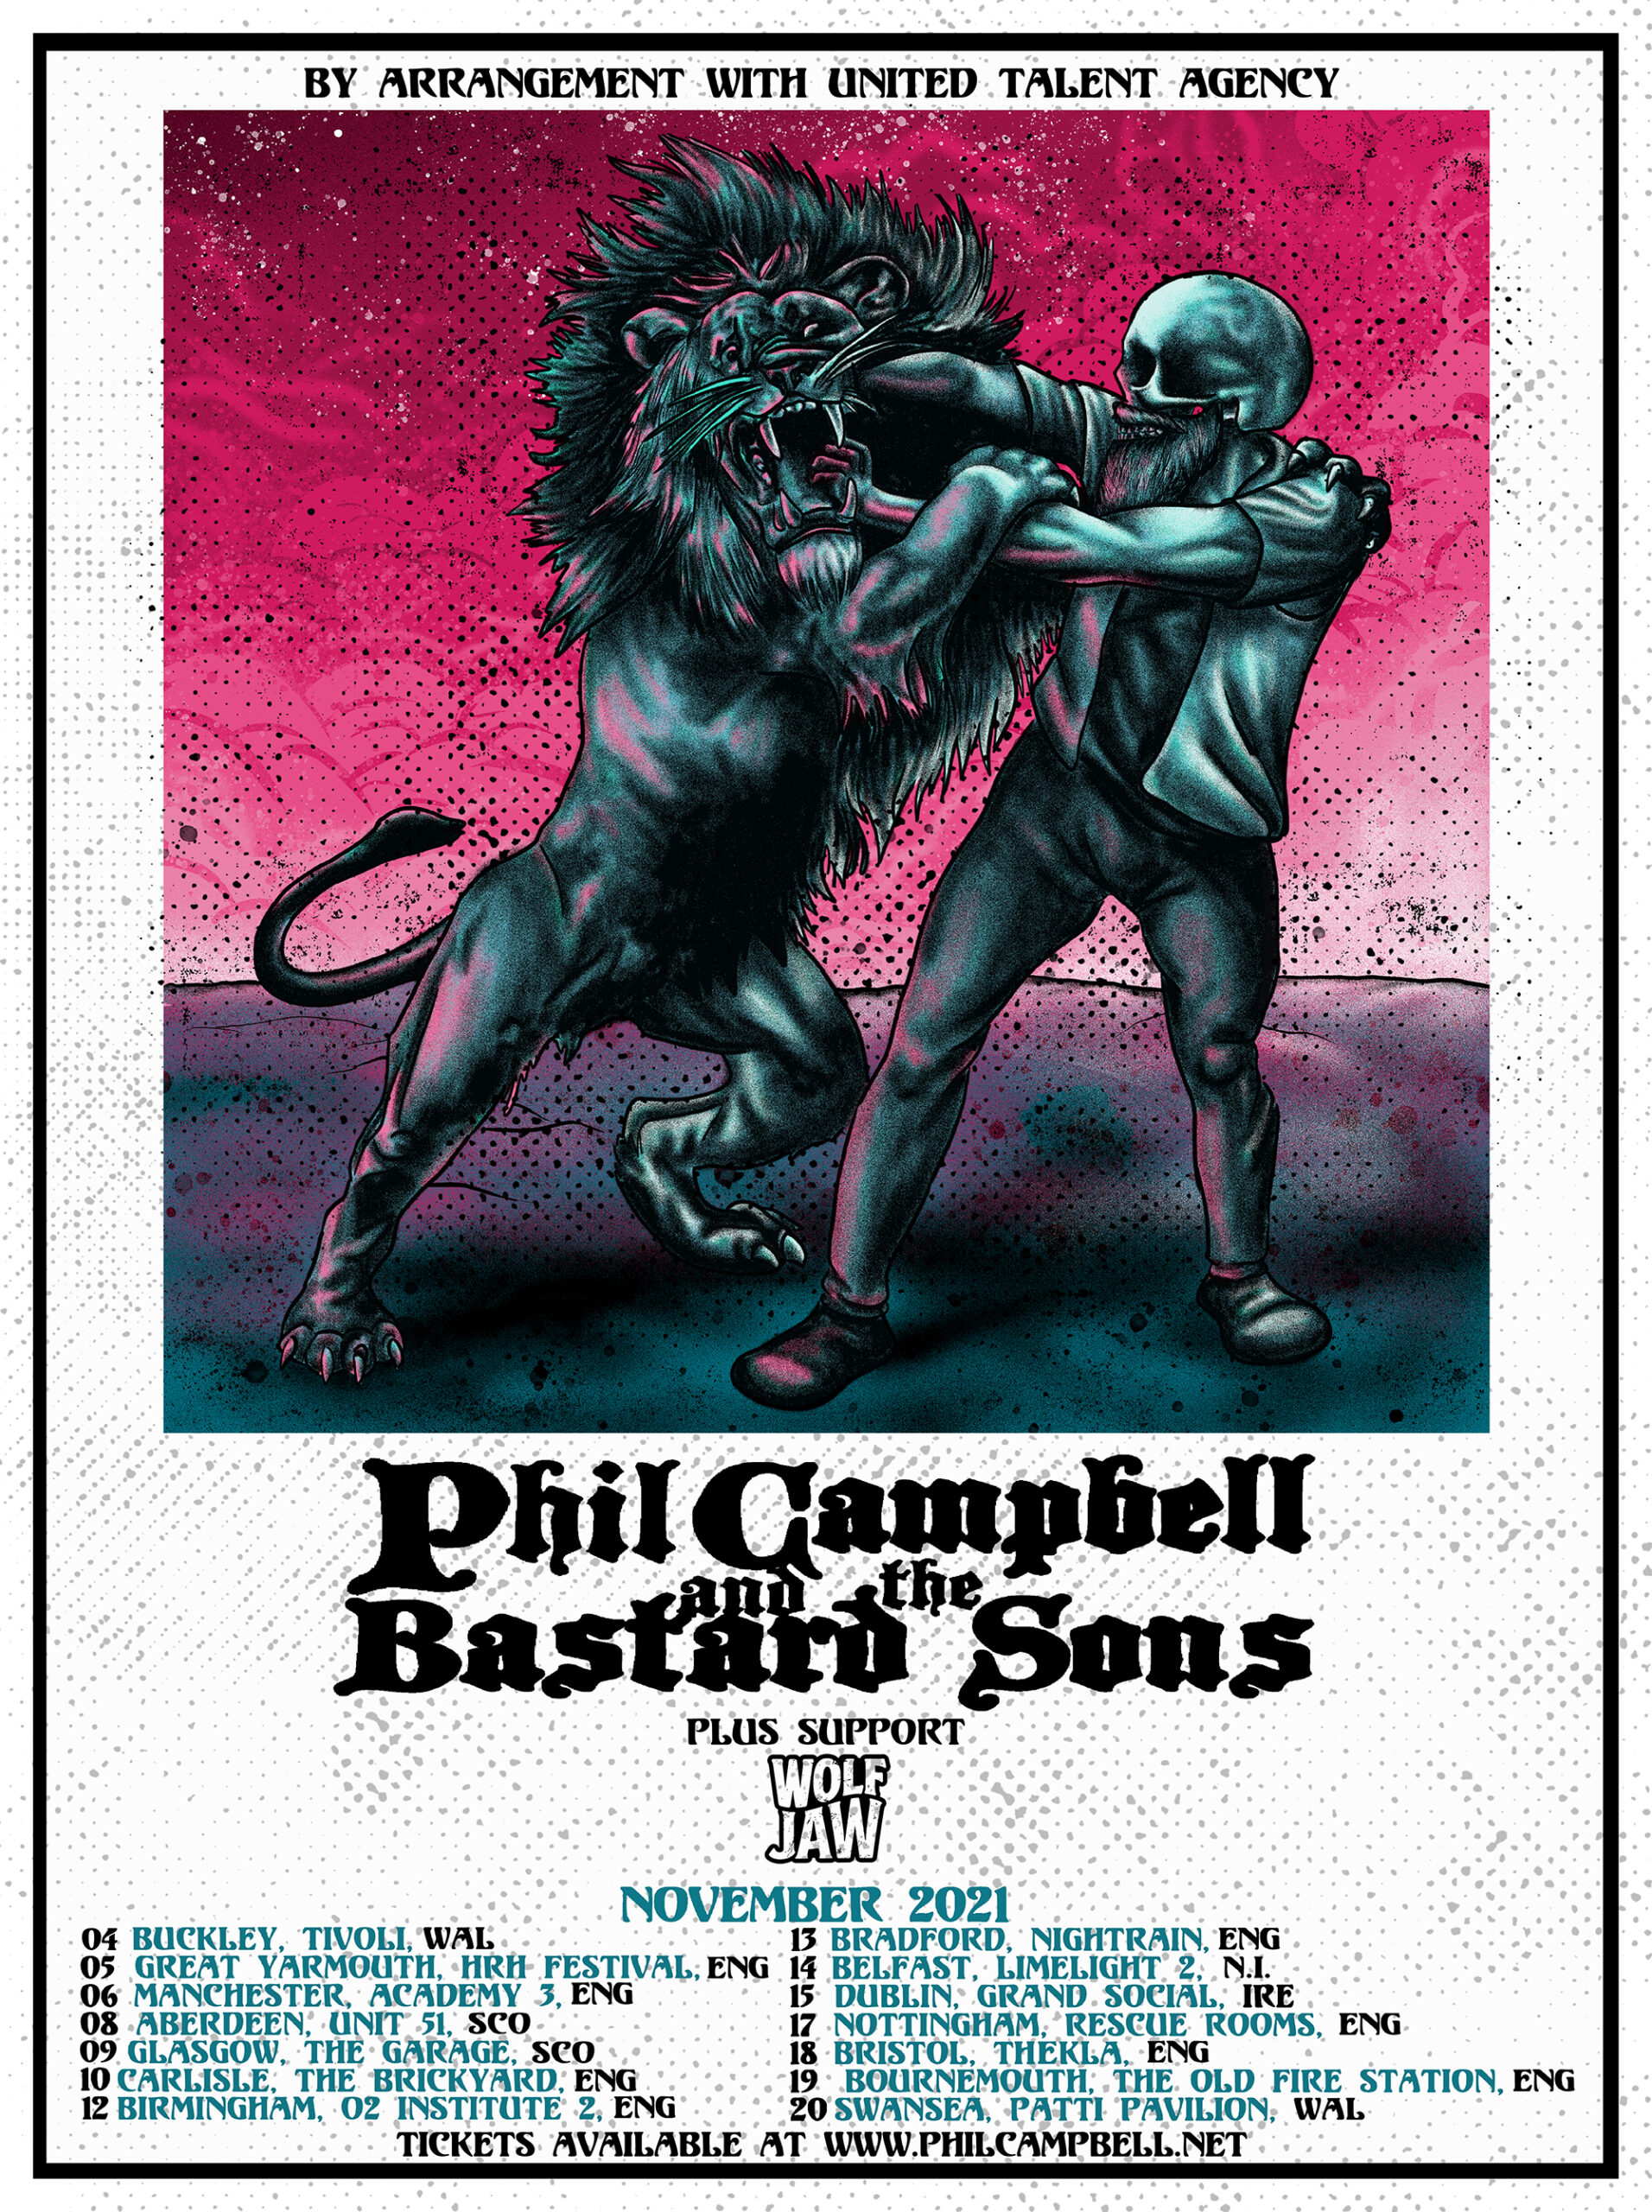 PHIL CAMPBELL AND THE BASTARD SONS Announce Wolf Jaw as UK tour support for November